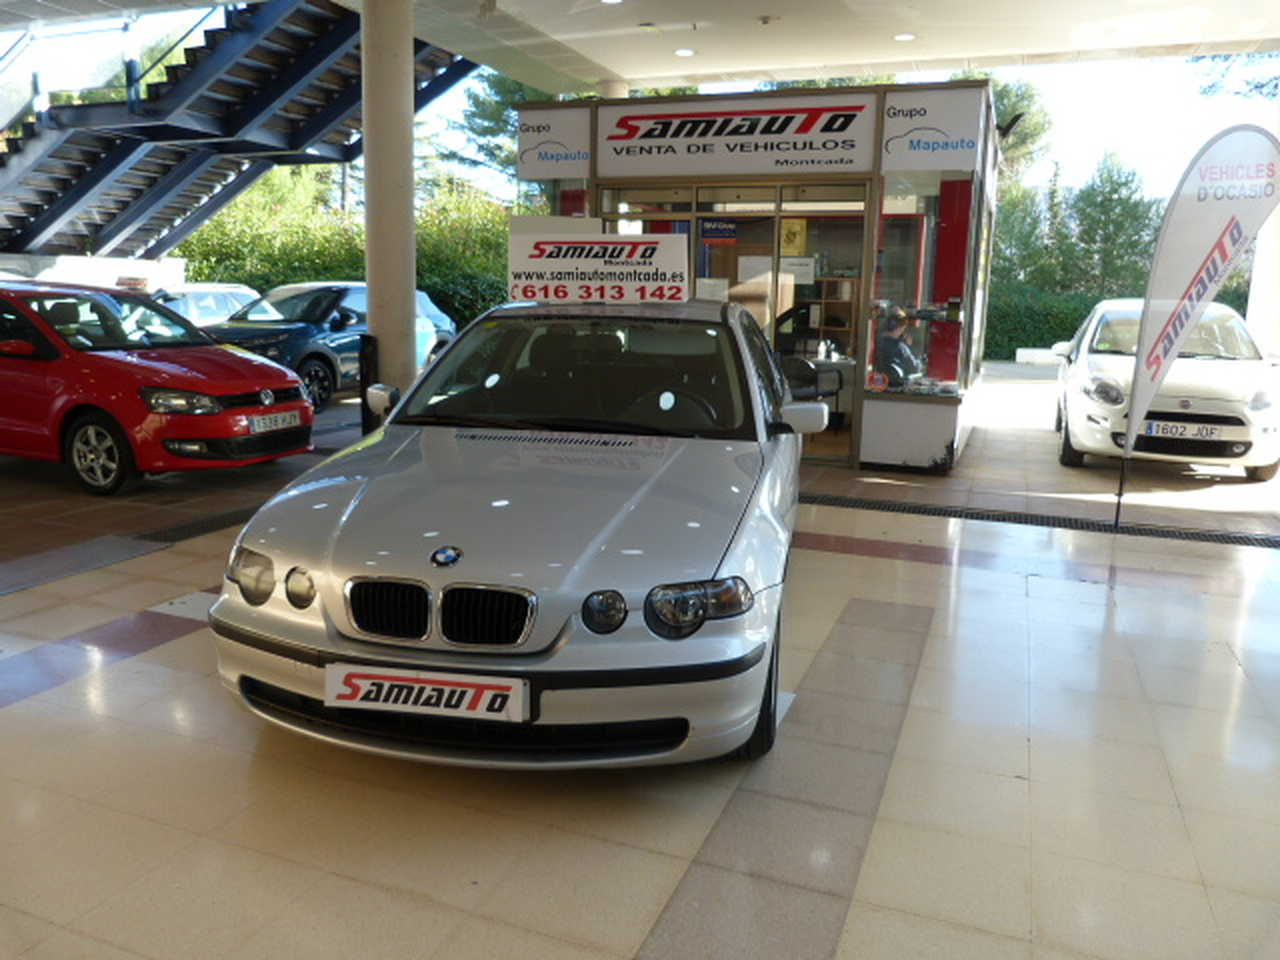 BMW Serie 3 Compact Compact 320td Compact 3p   - Foto 1